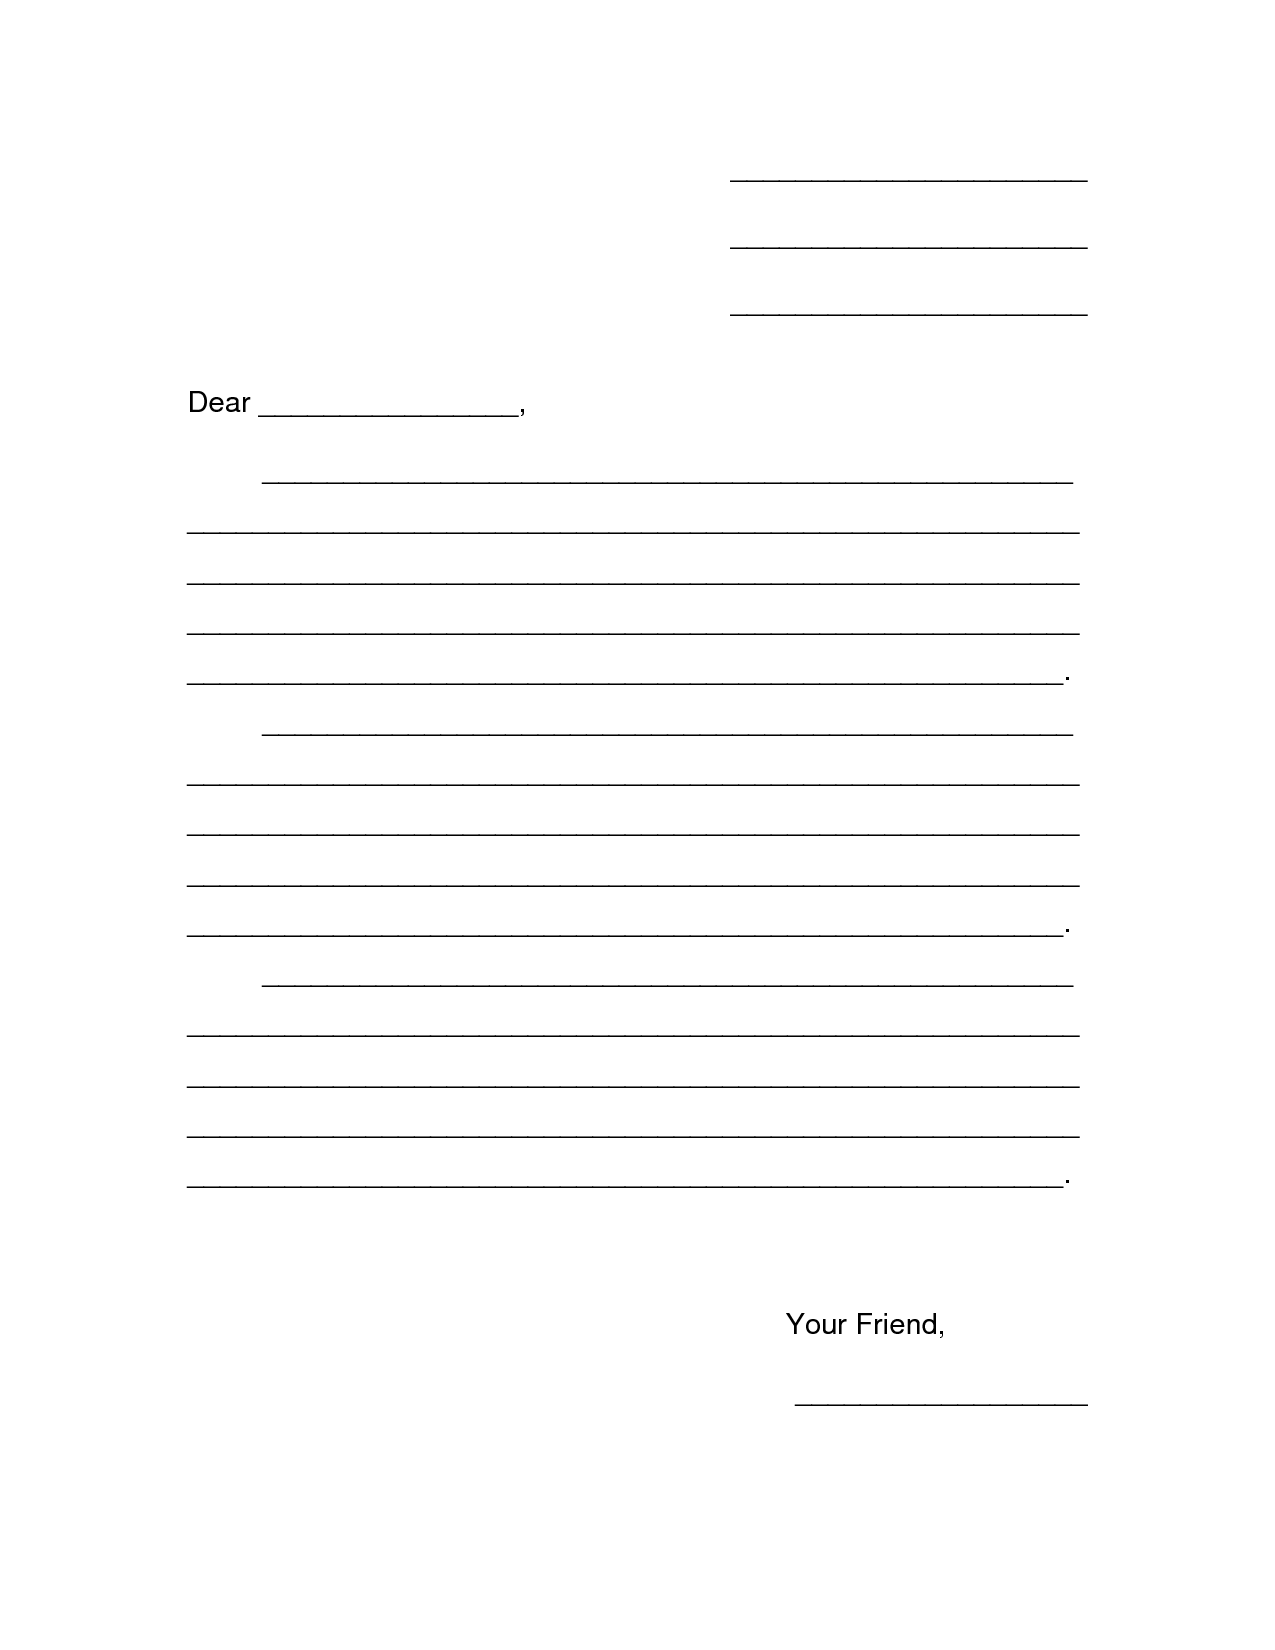 5 Images of A Friendly Letter-Writing Printable